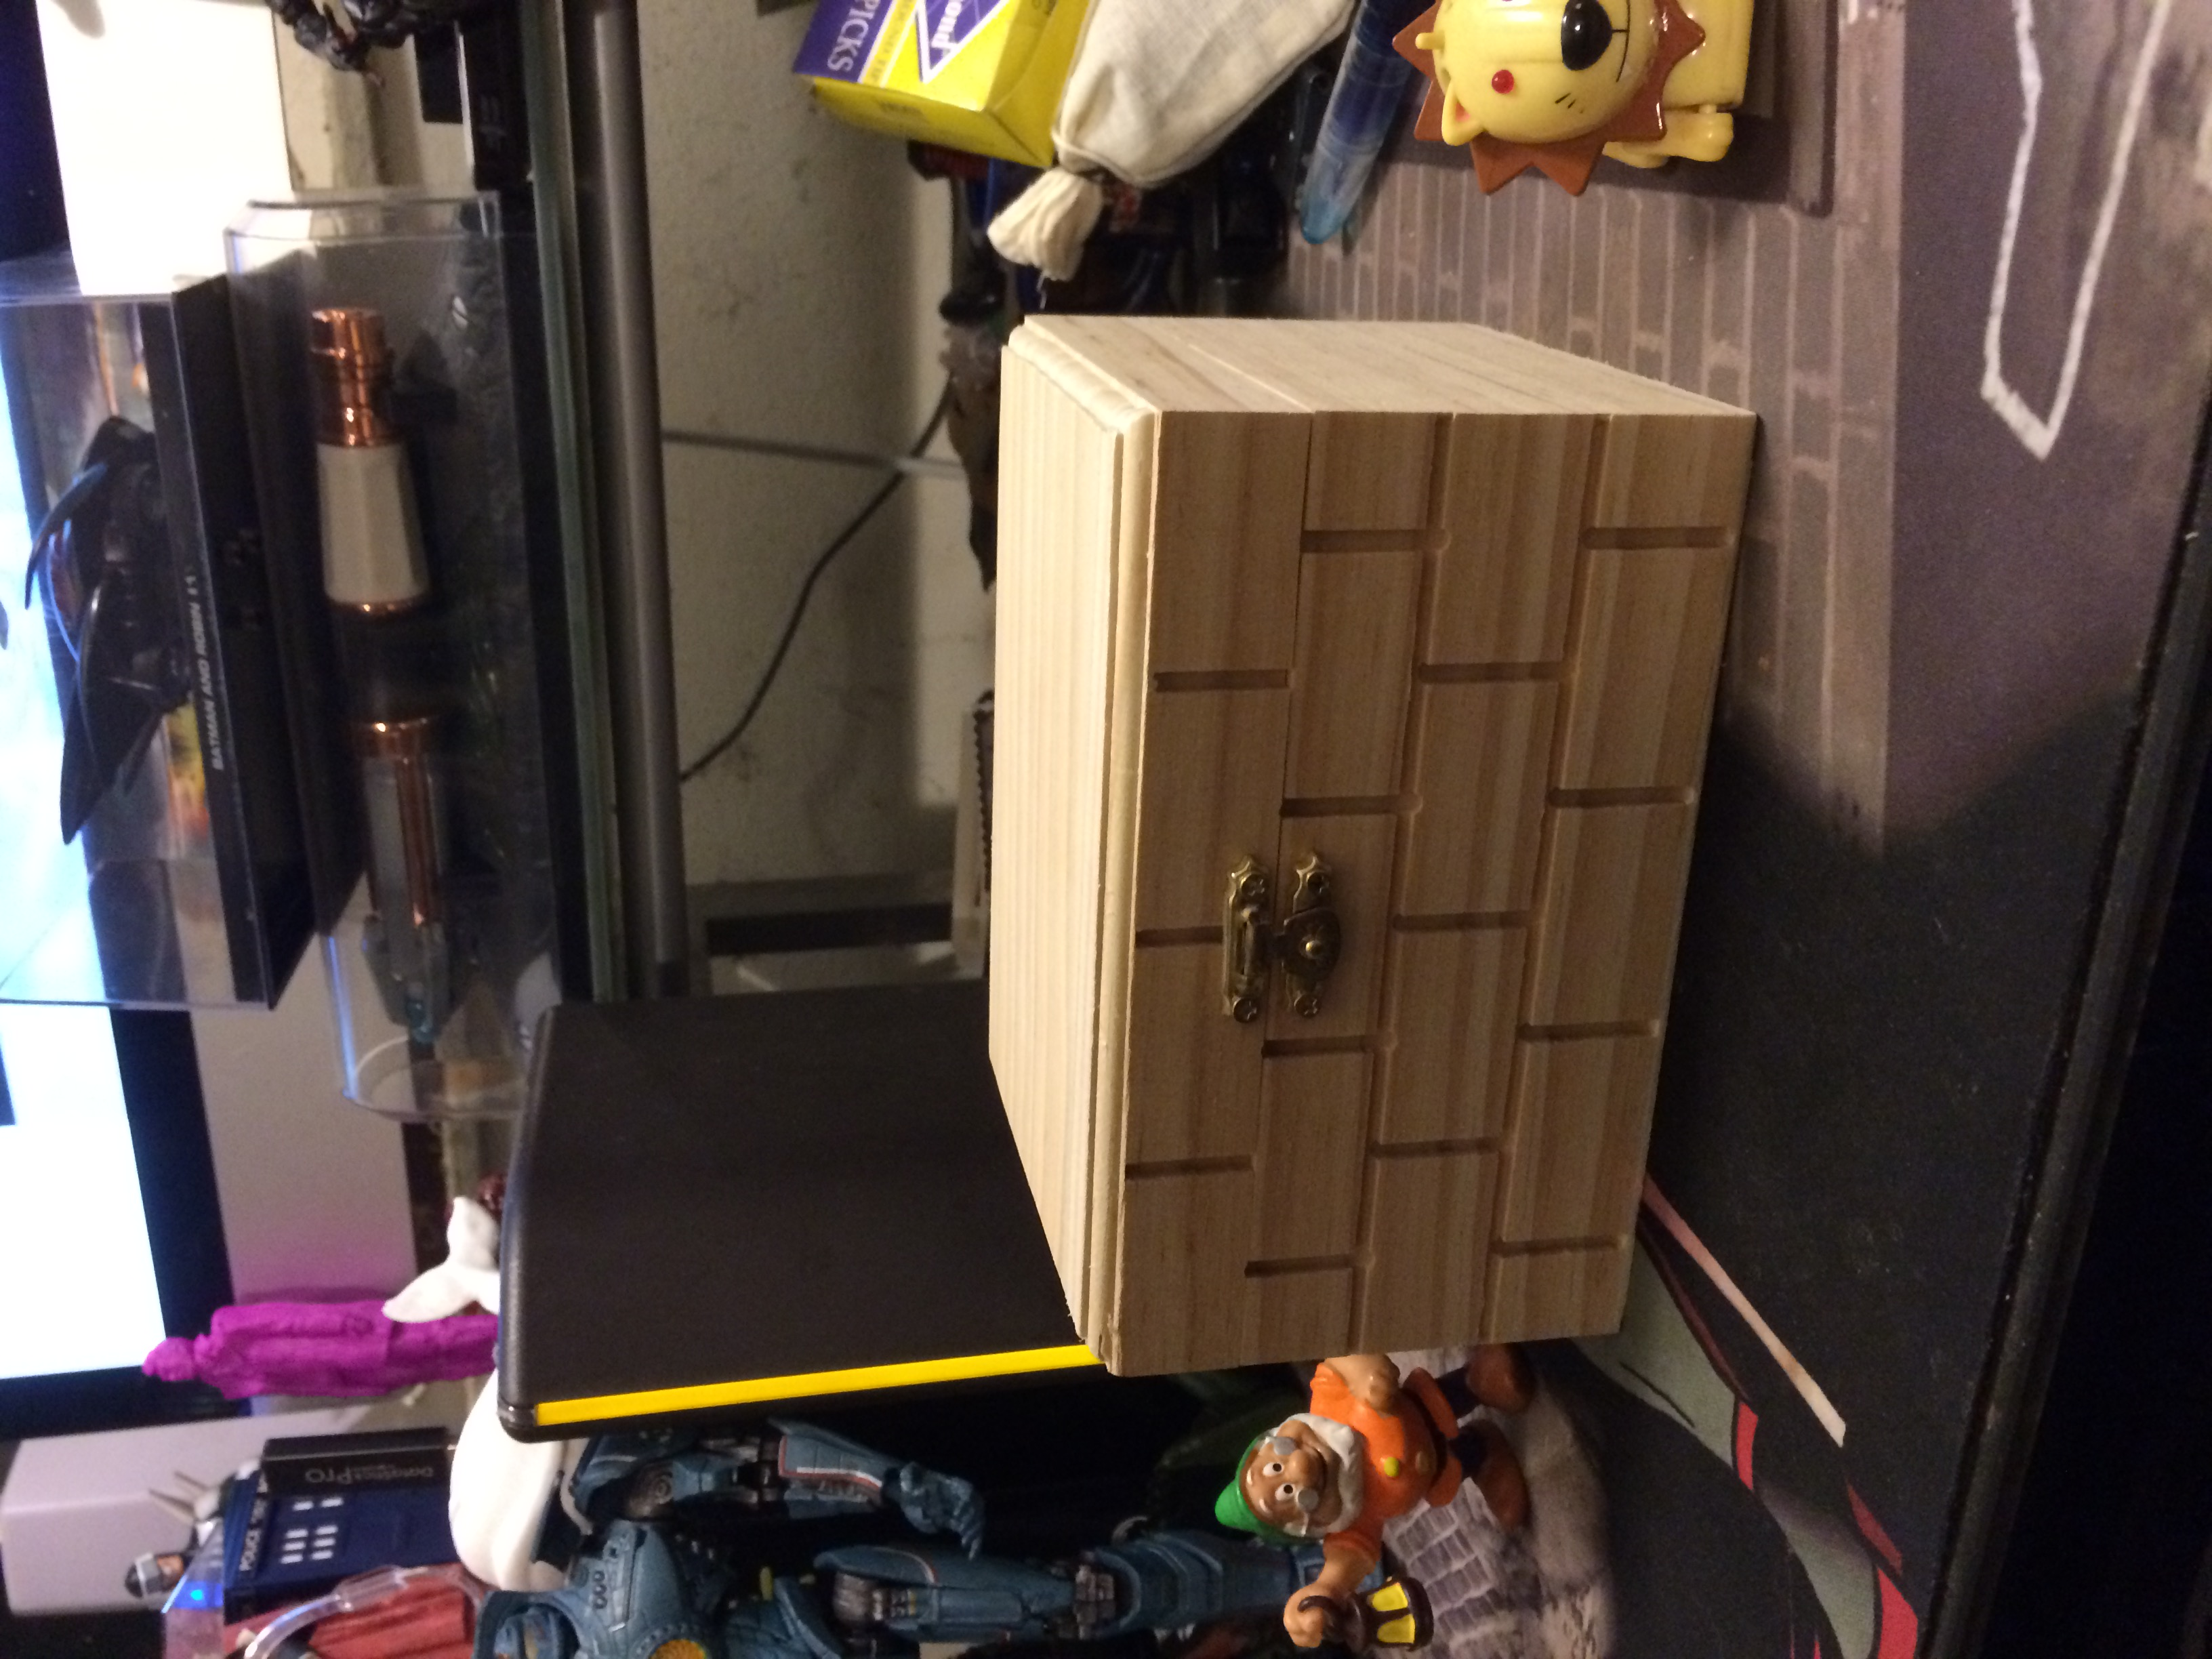 Lion, Dwarf, and hard drive for scale